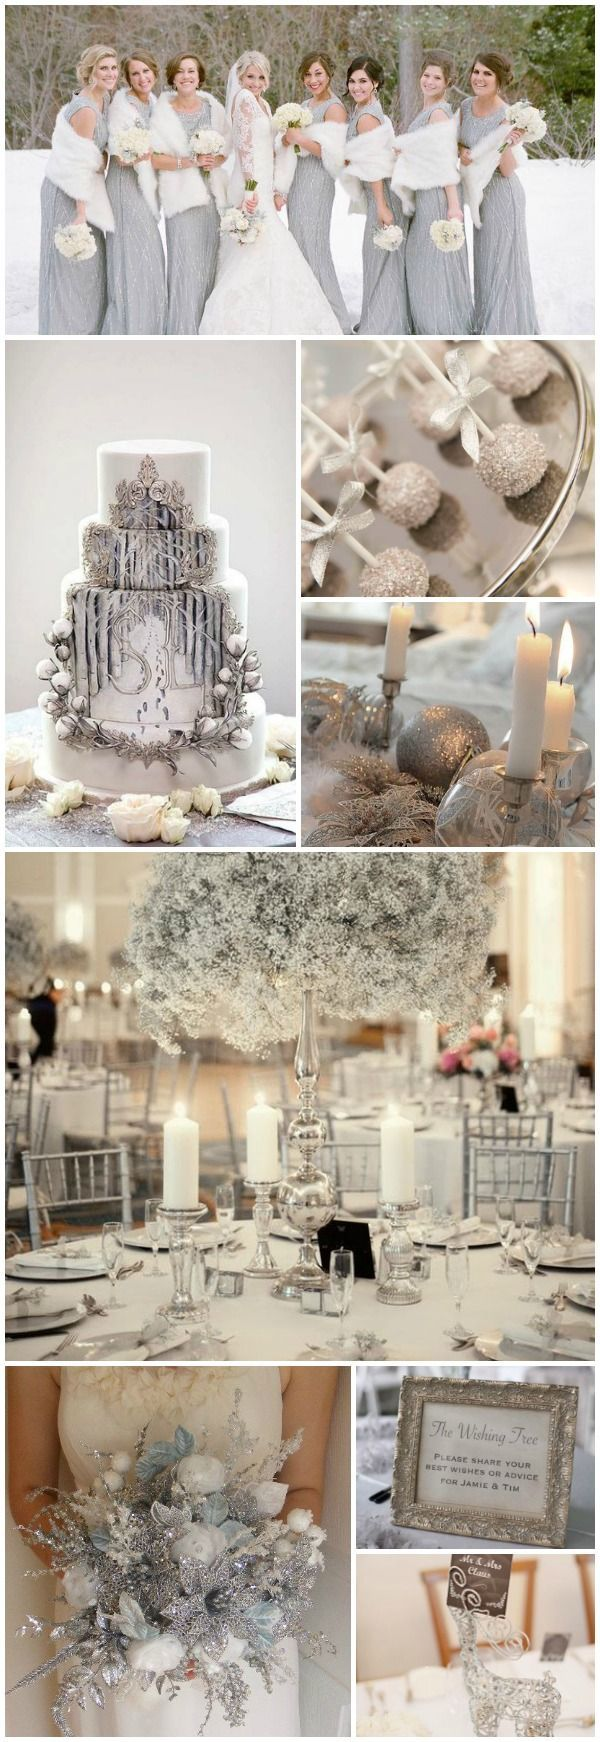 Jane & Micky's wedding.. Exquisite Silver and White Winter Wedding Decorations